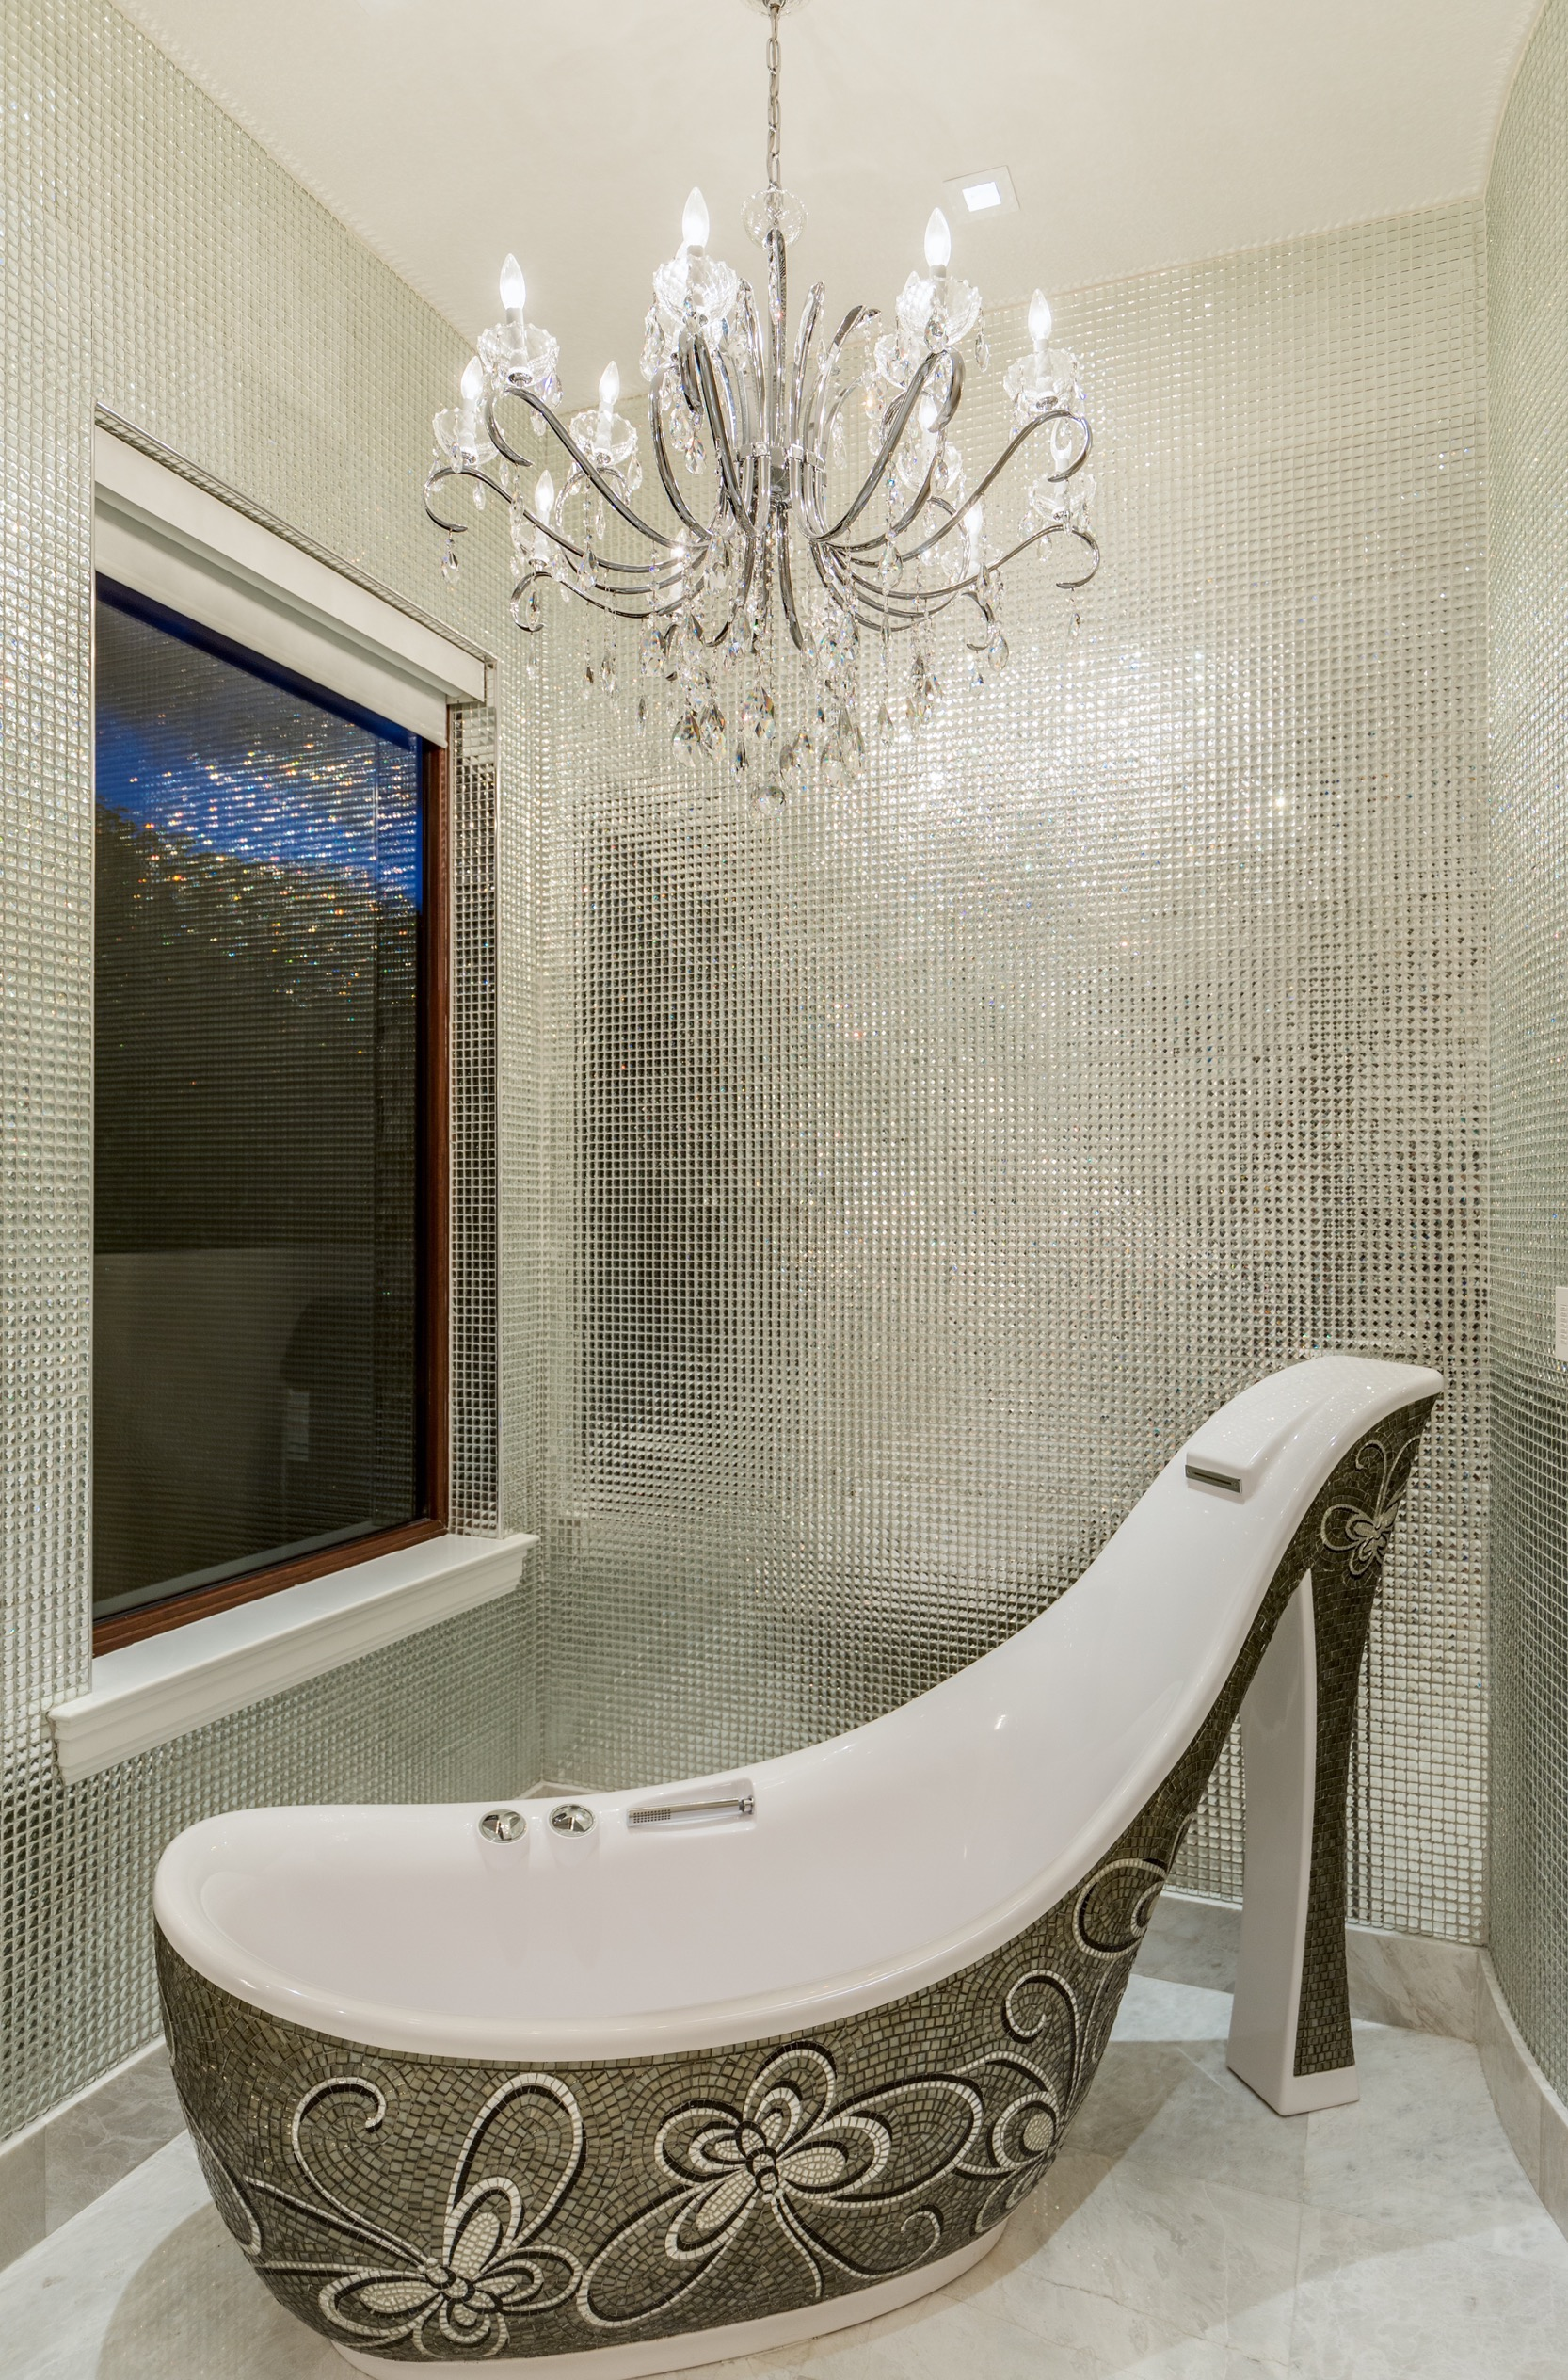 A stiletto tub inside a for-sale home in Jupiter